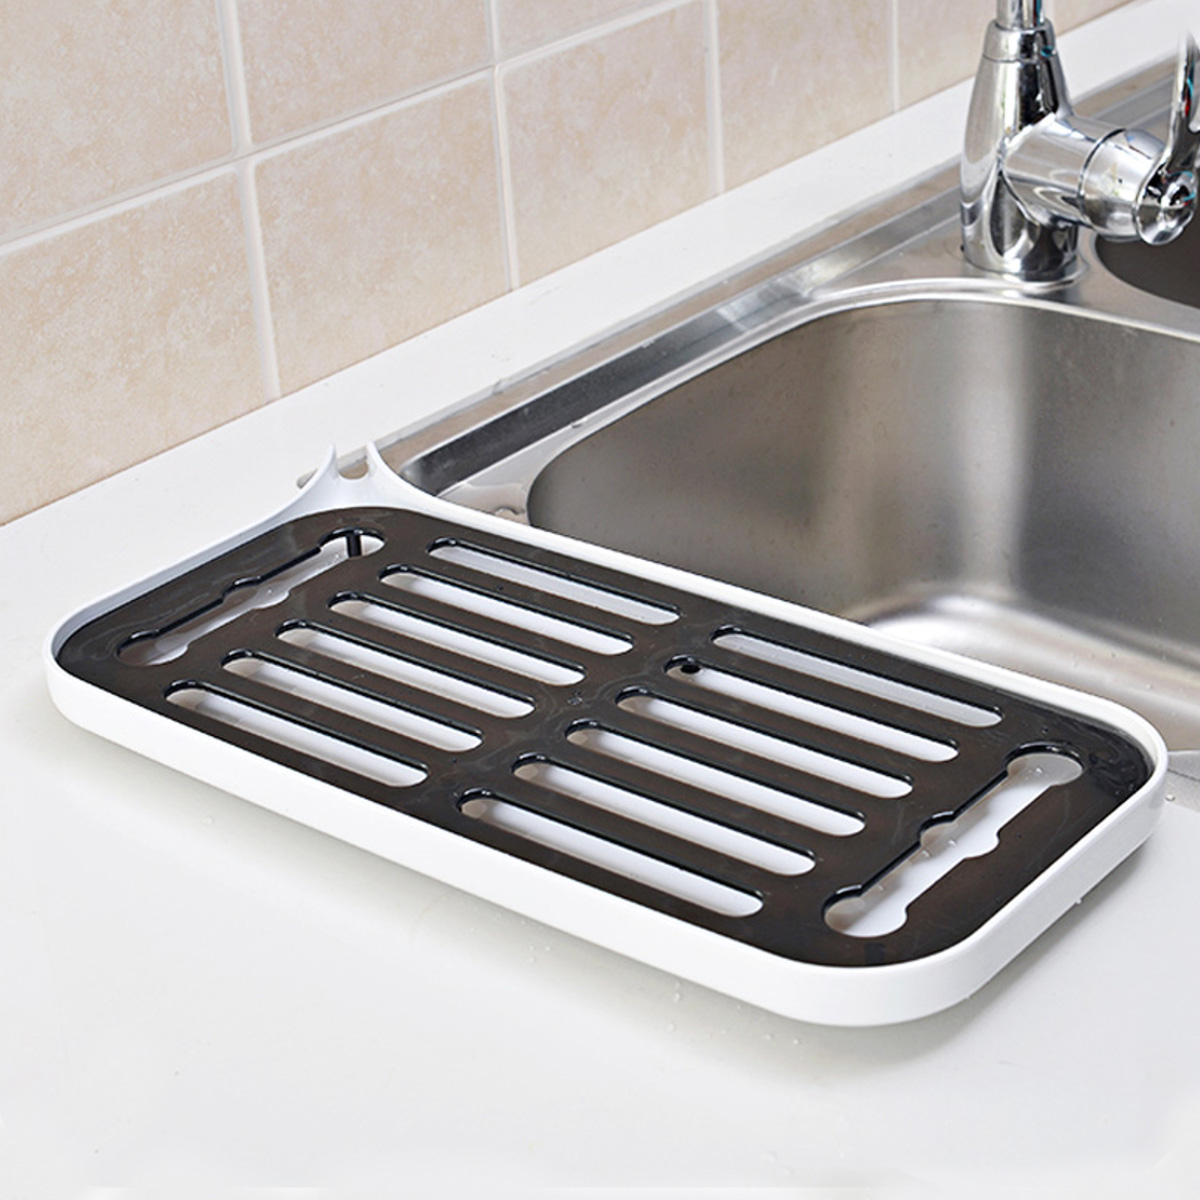 Kitchen Dish Drainer Drip Tray Rack Board Sink Drying